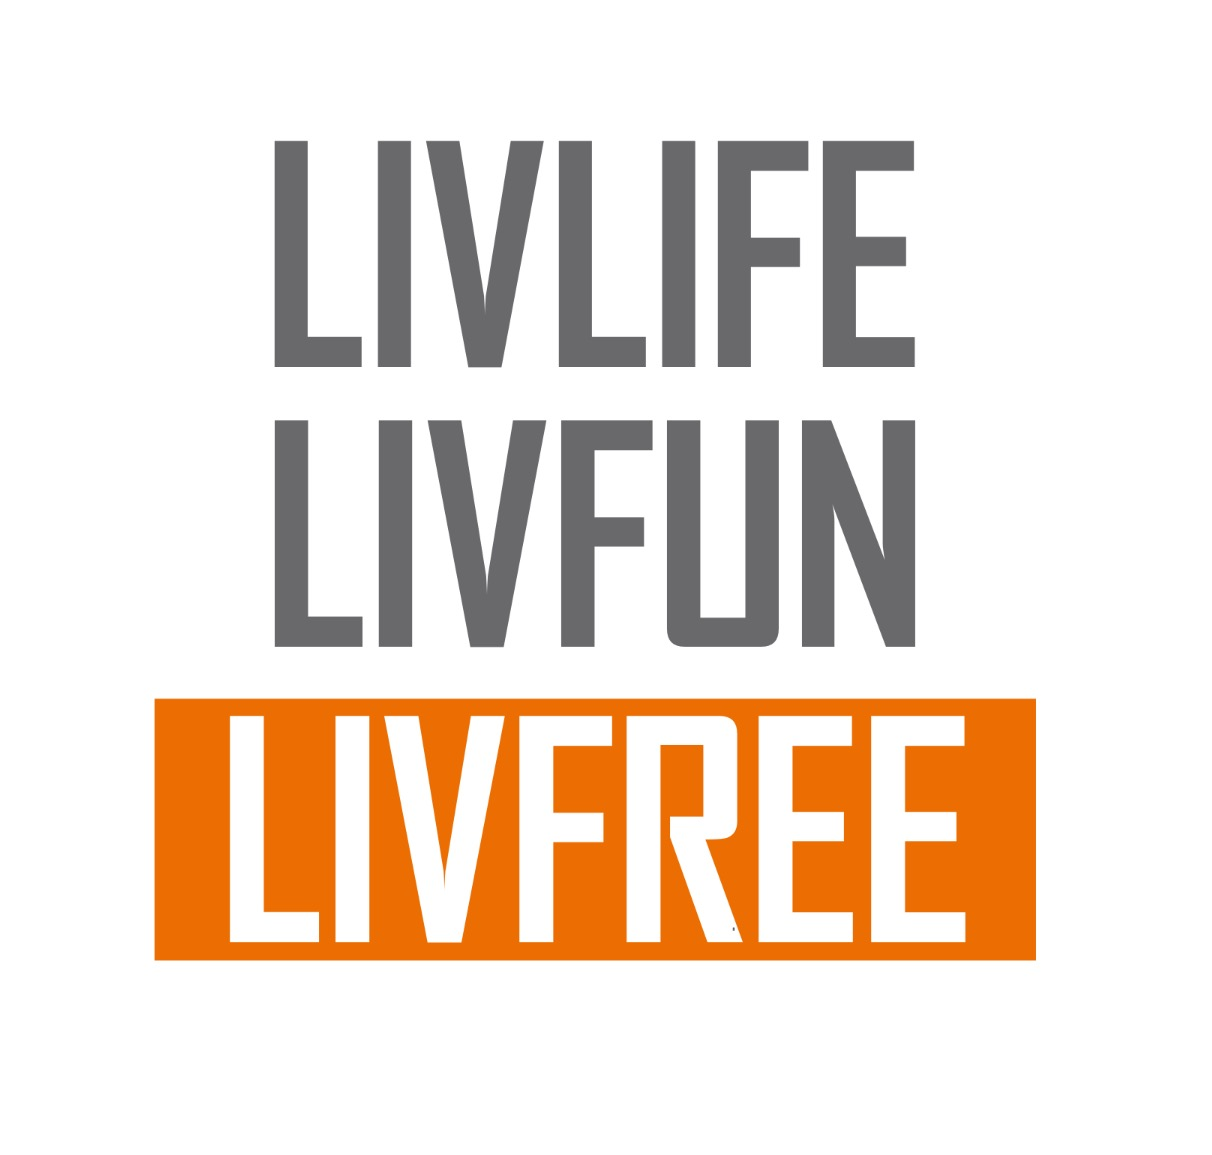 3rd Annual Tee-Up for LivFree logo